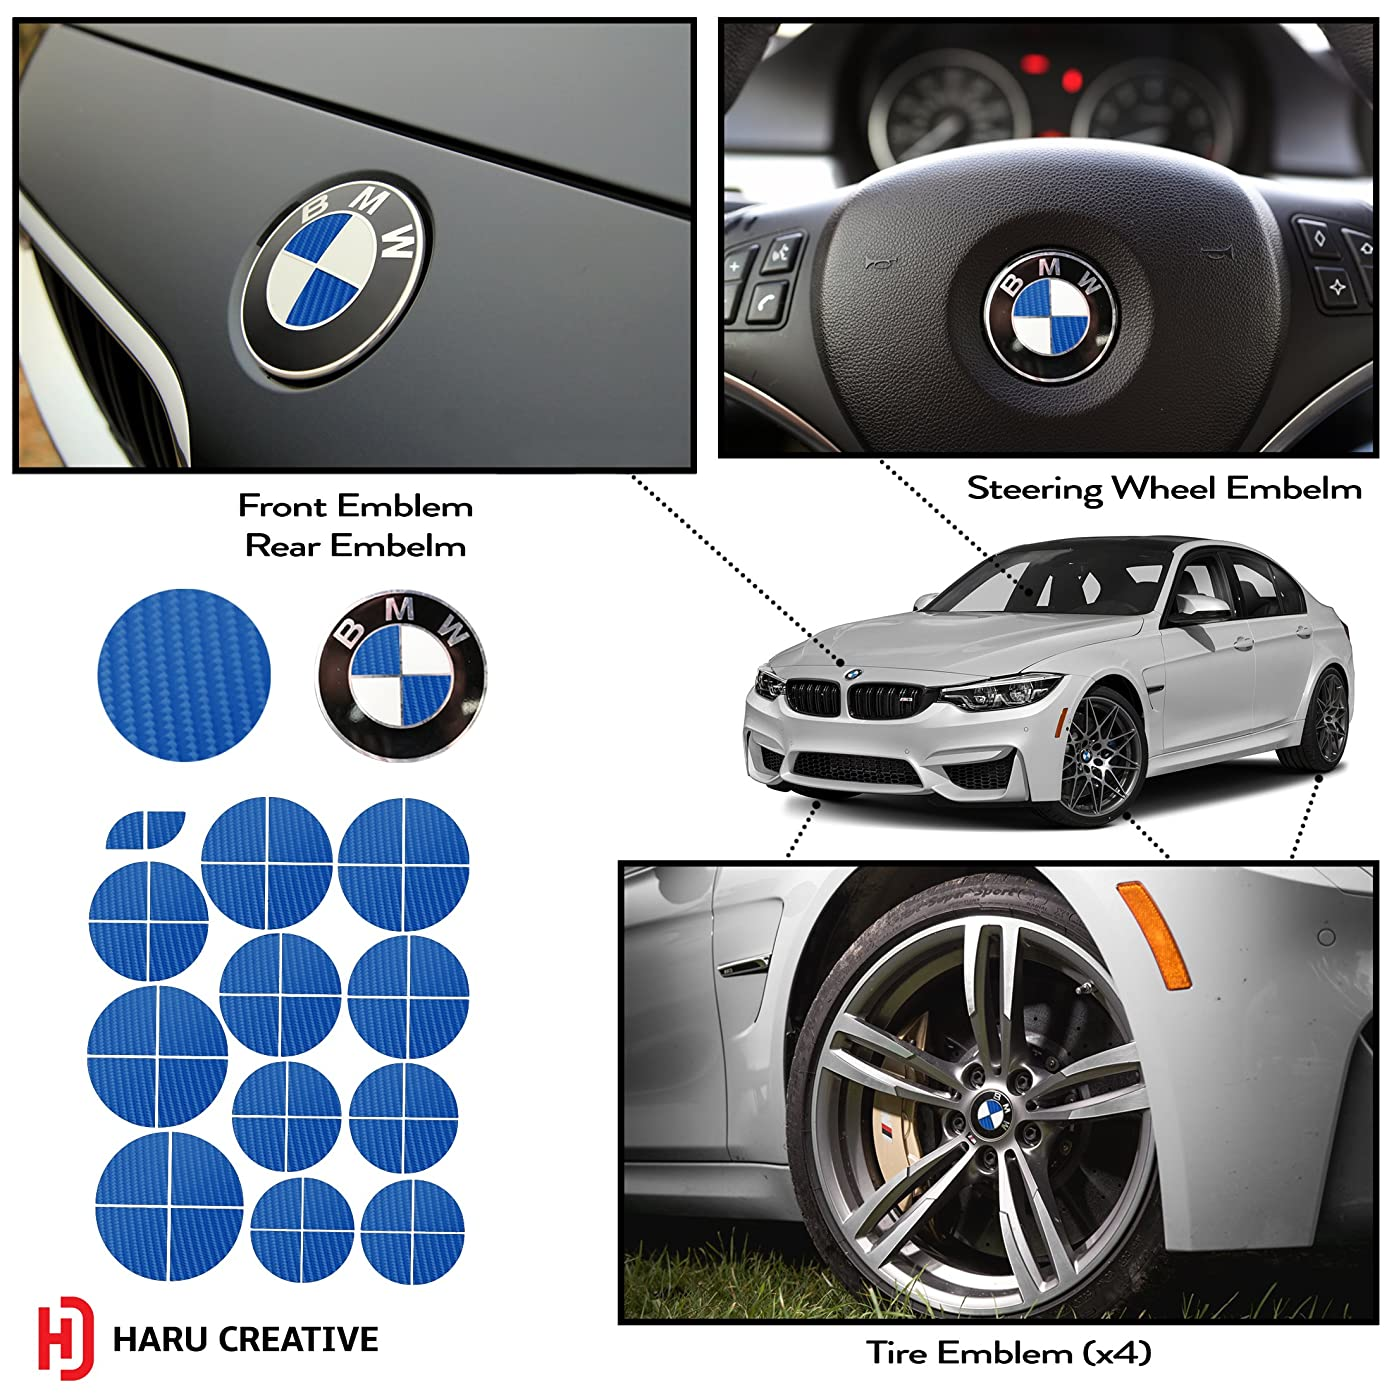 Haru Creative - Vinyl Overlay Decal Fits All BMW Emblem Caps Hood Trunk Wheel Fender (Emblem Not Included) - 4D Carbon Fiber Blue